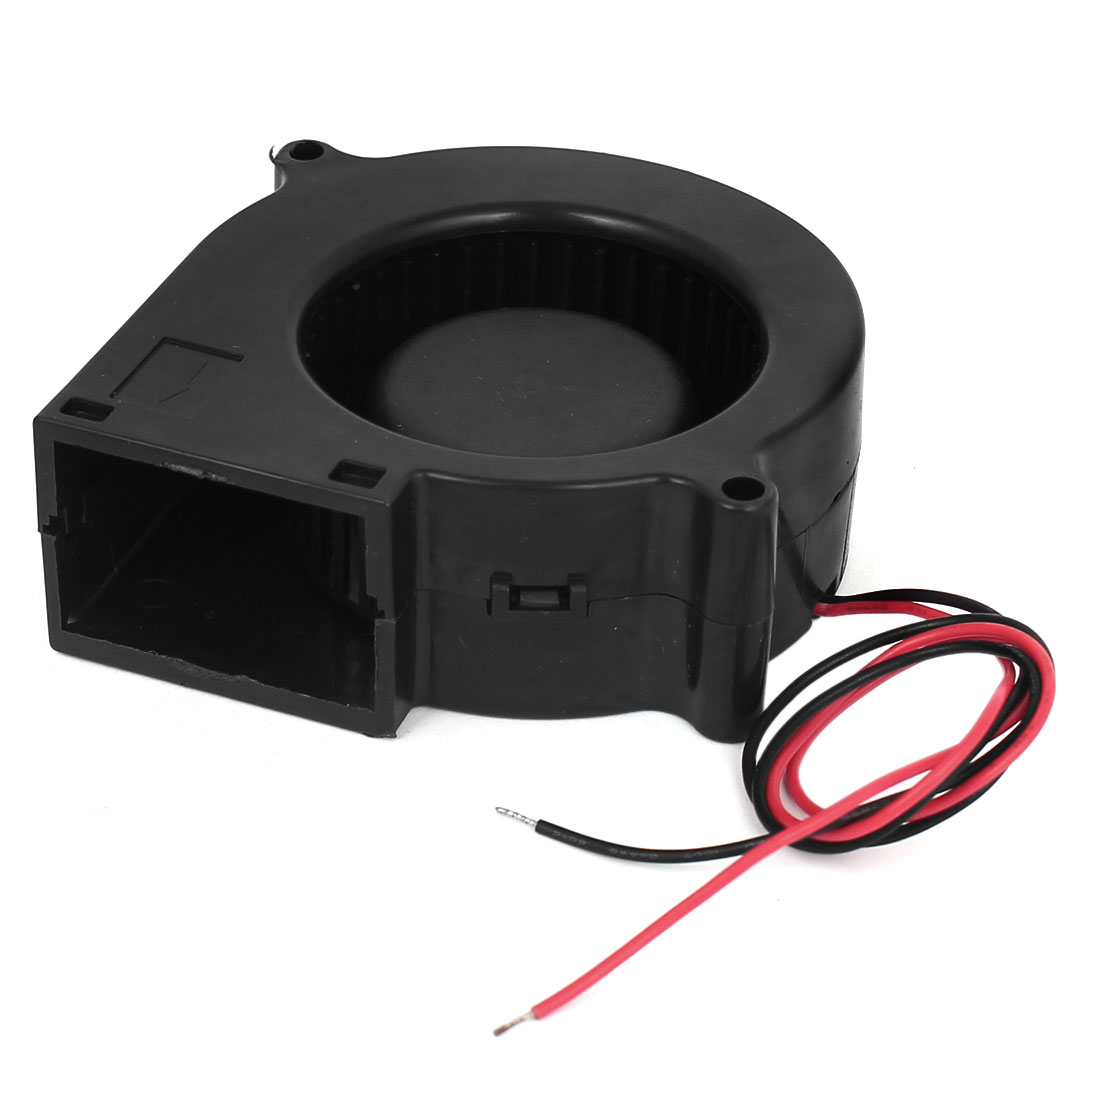 DC 12V 0.45A 2-Wired Black Plastic Frame Sleeve Bearing Blower Cooling Fan